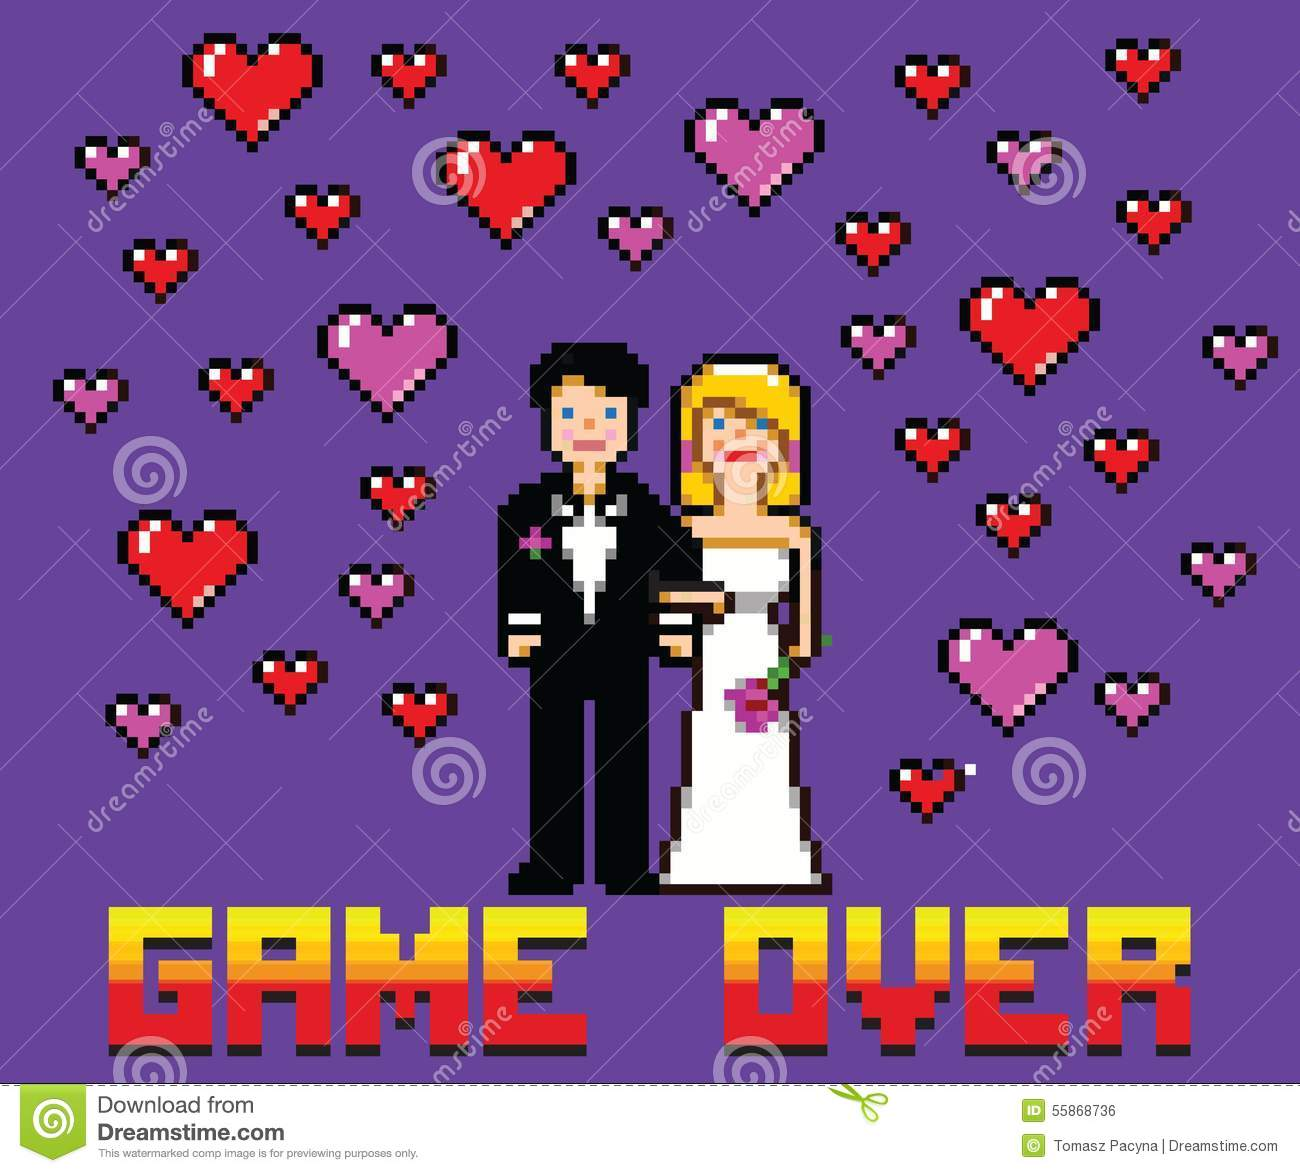 Game Over Wedding Stock Illustrations 71 Game Over Wedding Stock Illustrations Vectors Clipart Dreamstime